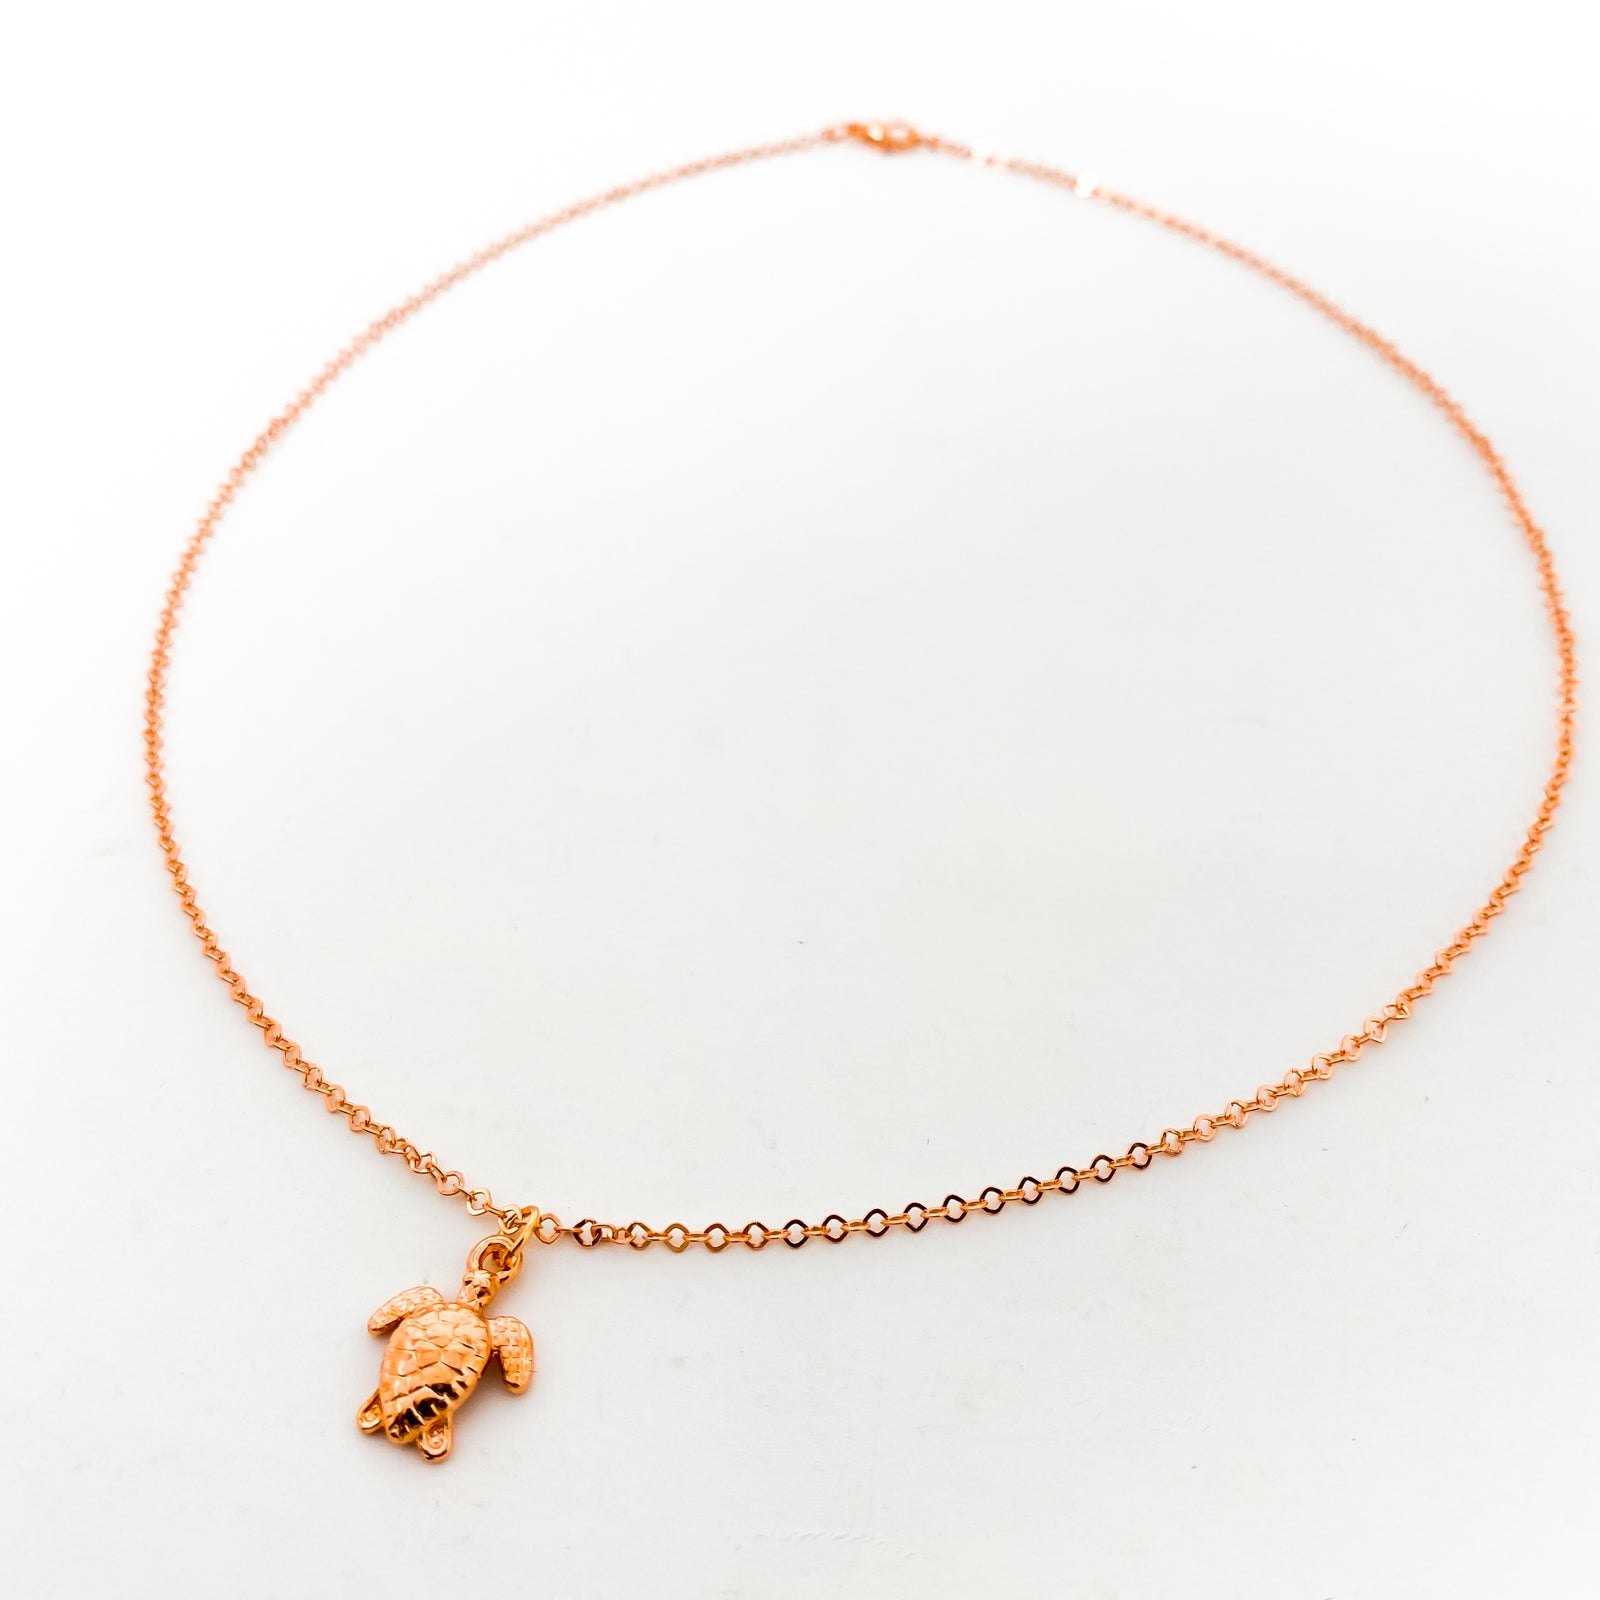 MINI SEA TURTLE NECKLACES | ROSE GOLD